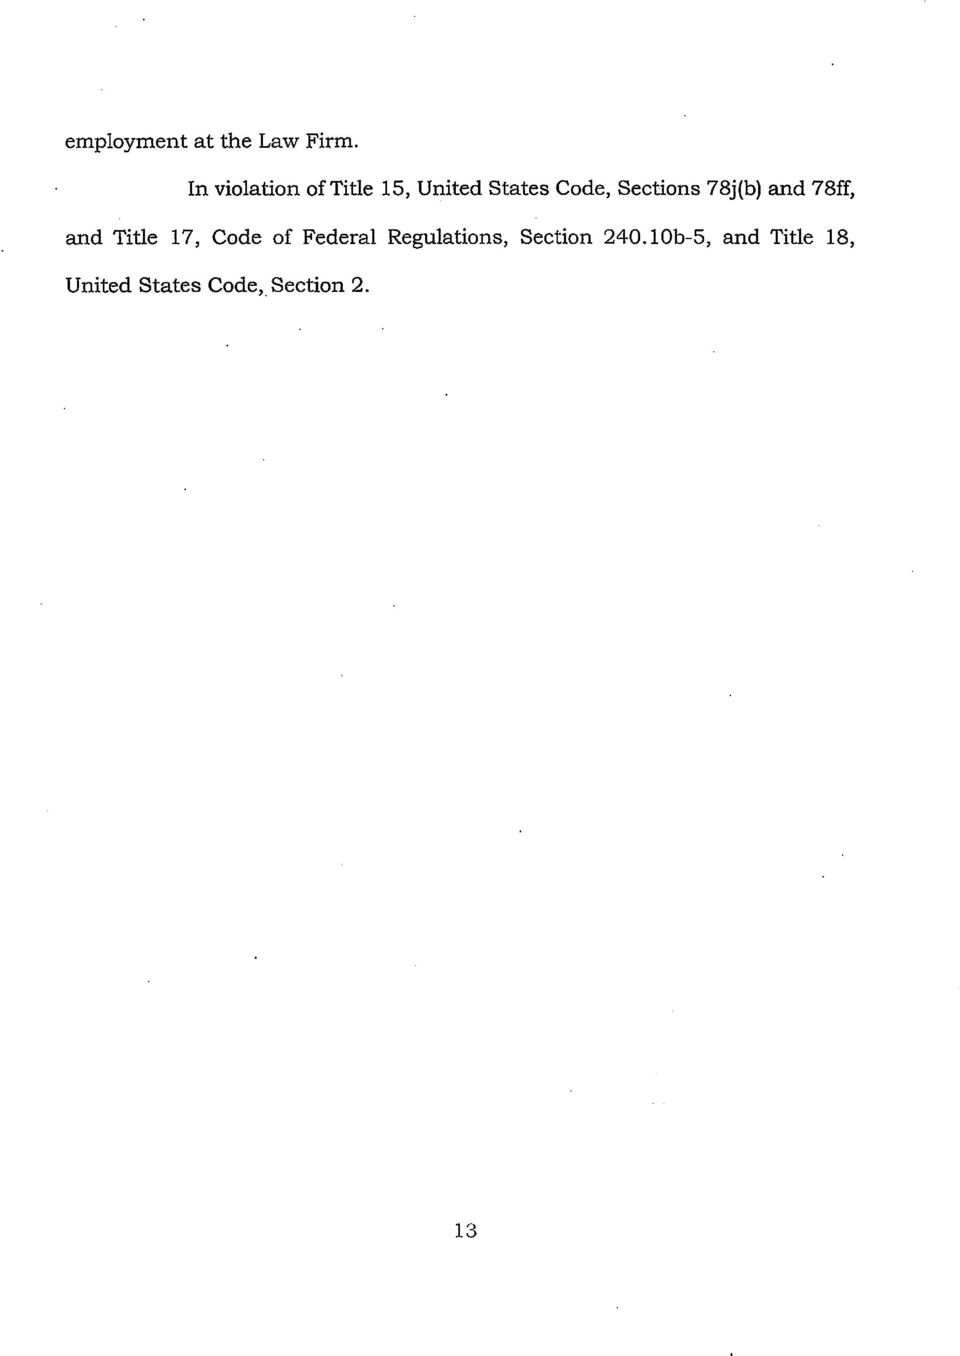 Sections 78j(b) and 78ff, and Title 17, Code of